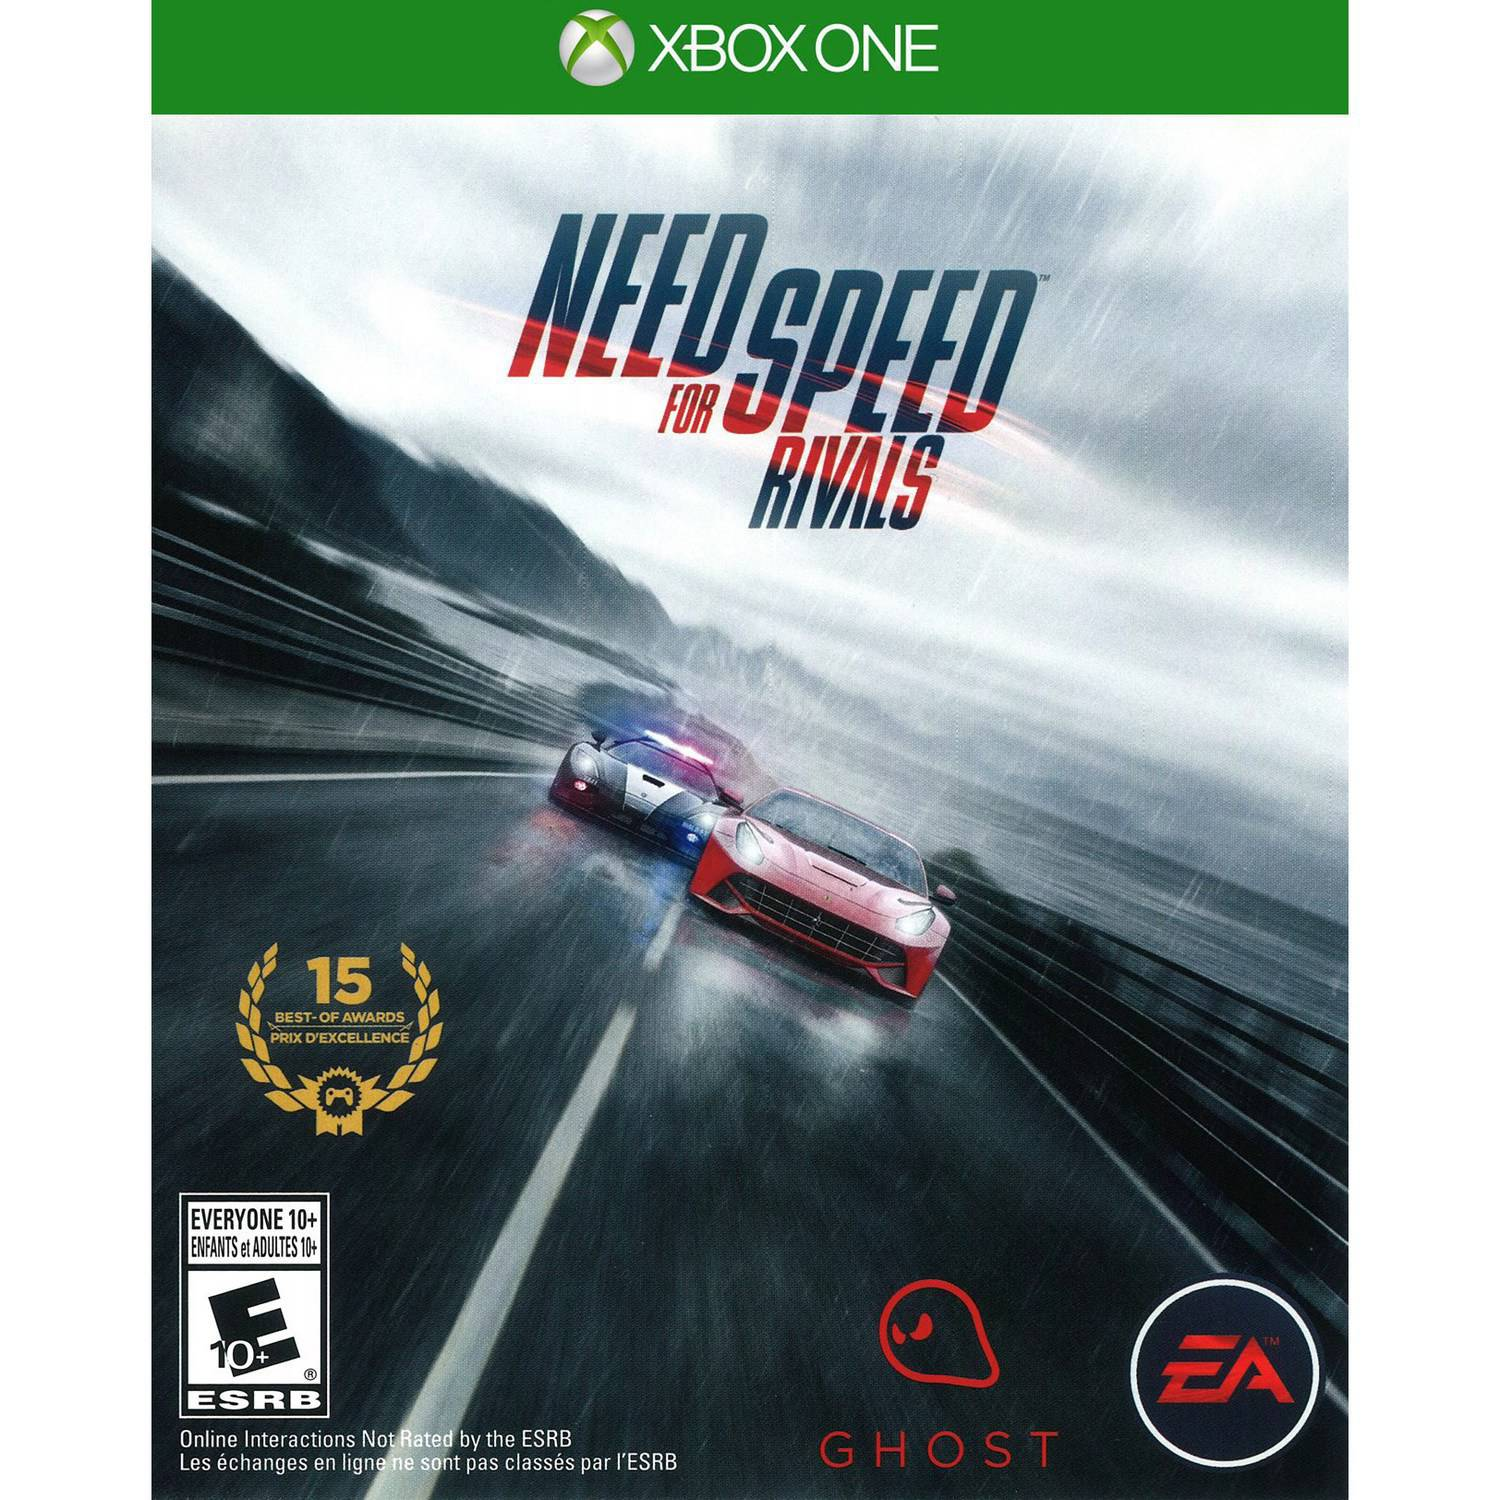 Need for Speed: Rivals (Xbox One) Electronic Arts, 14633730357 by Ghost Games